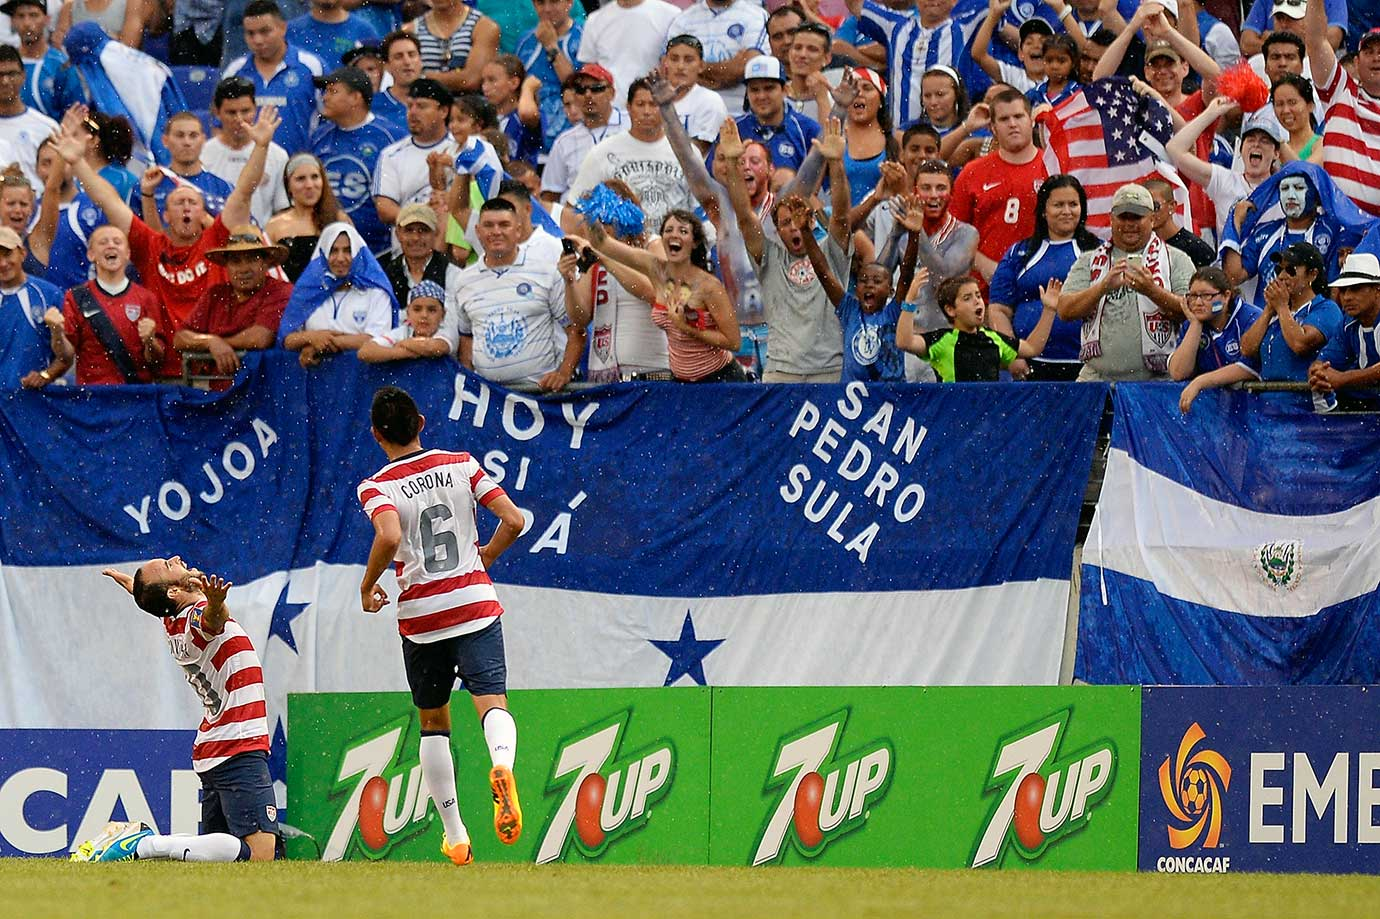 Landon Donovan celebrates after scoring a goal against El Salvador during 5-1 victory over El Salvador in the 2013 CONCACAF Gold Cup quarterfinal in Baltimore.